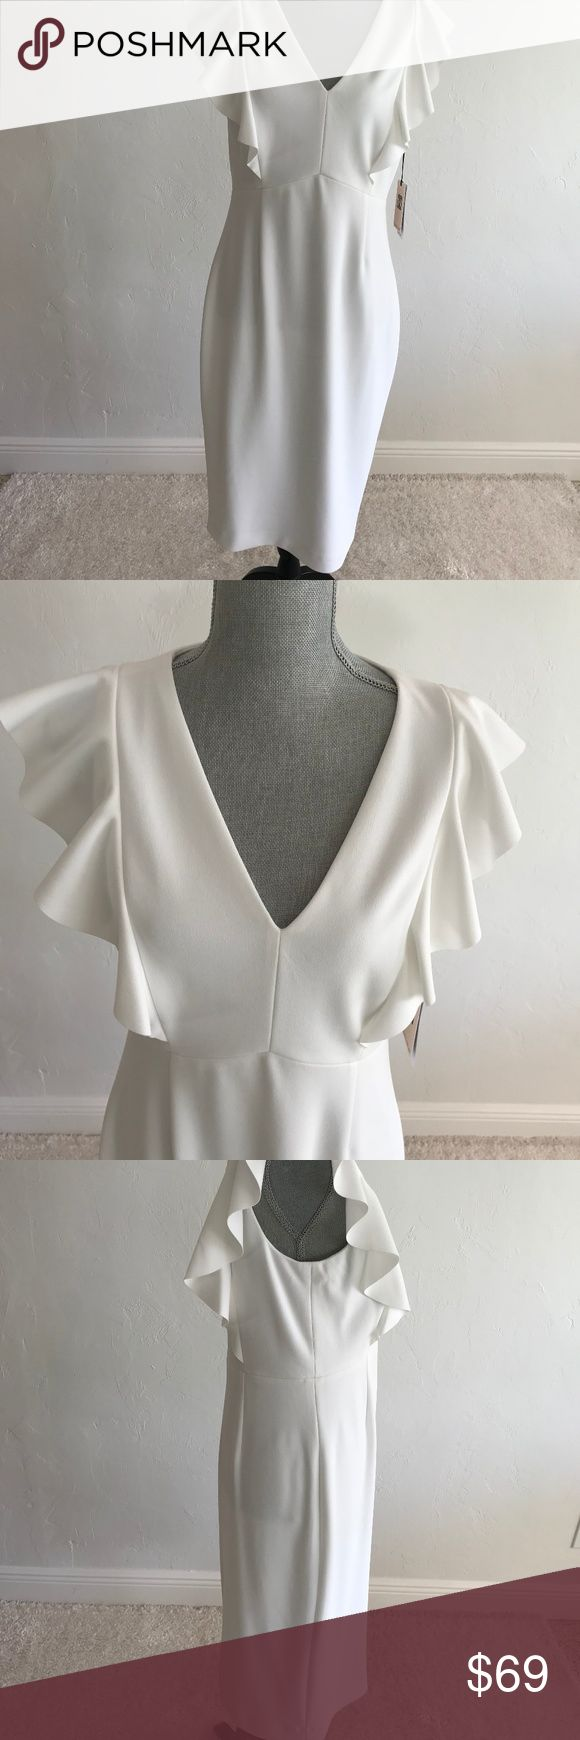 """NEW Ivanka Trump dress NEW Ivanka Trump dress white V-neck ruffles sleeveless zippered in the back , midi dress  . Fit and flare.  Size 10. Shell 94% polyester and 6% elastane, lining 100% polyester.  Armpit to armpit      18""""     length      41"""". Price firm. Ivanka Trump Dresses"""